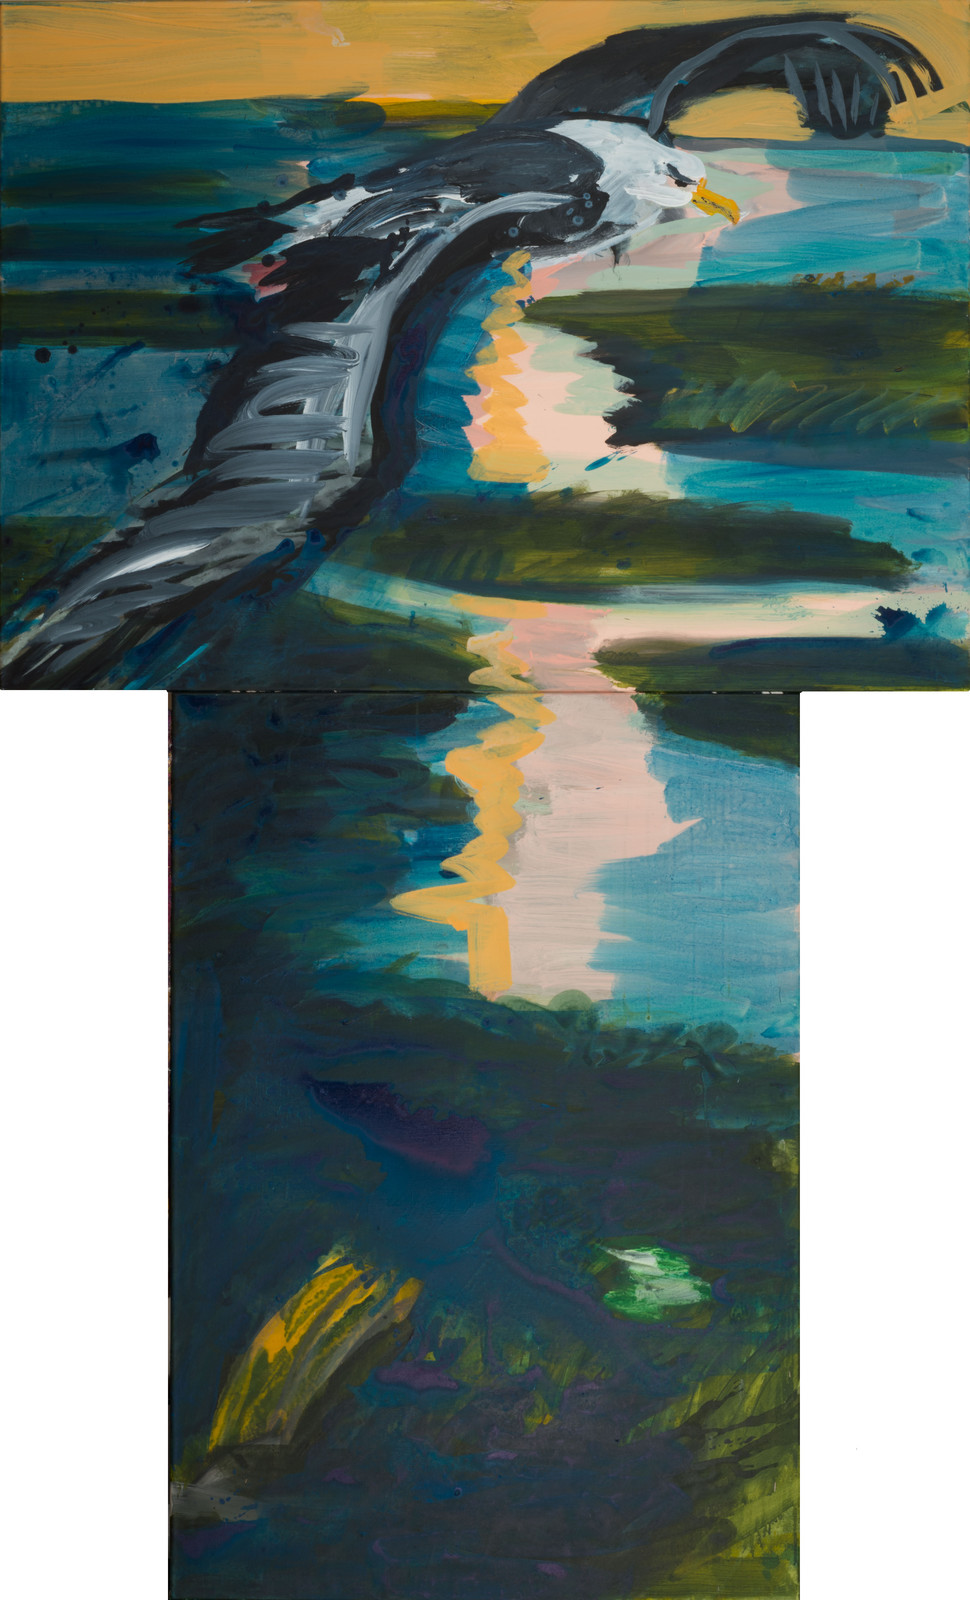 Rainer Fetting, Albatros Anflug auf Sylt, 2018, acrylic on canvas, 230 x 140 cm